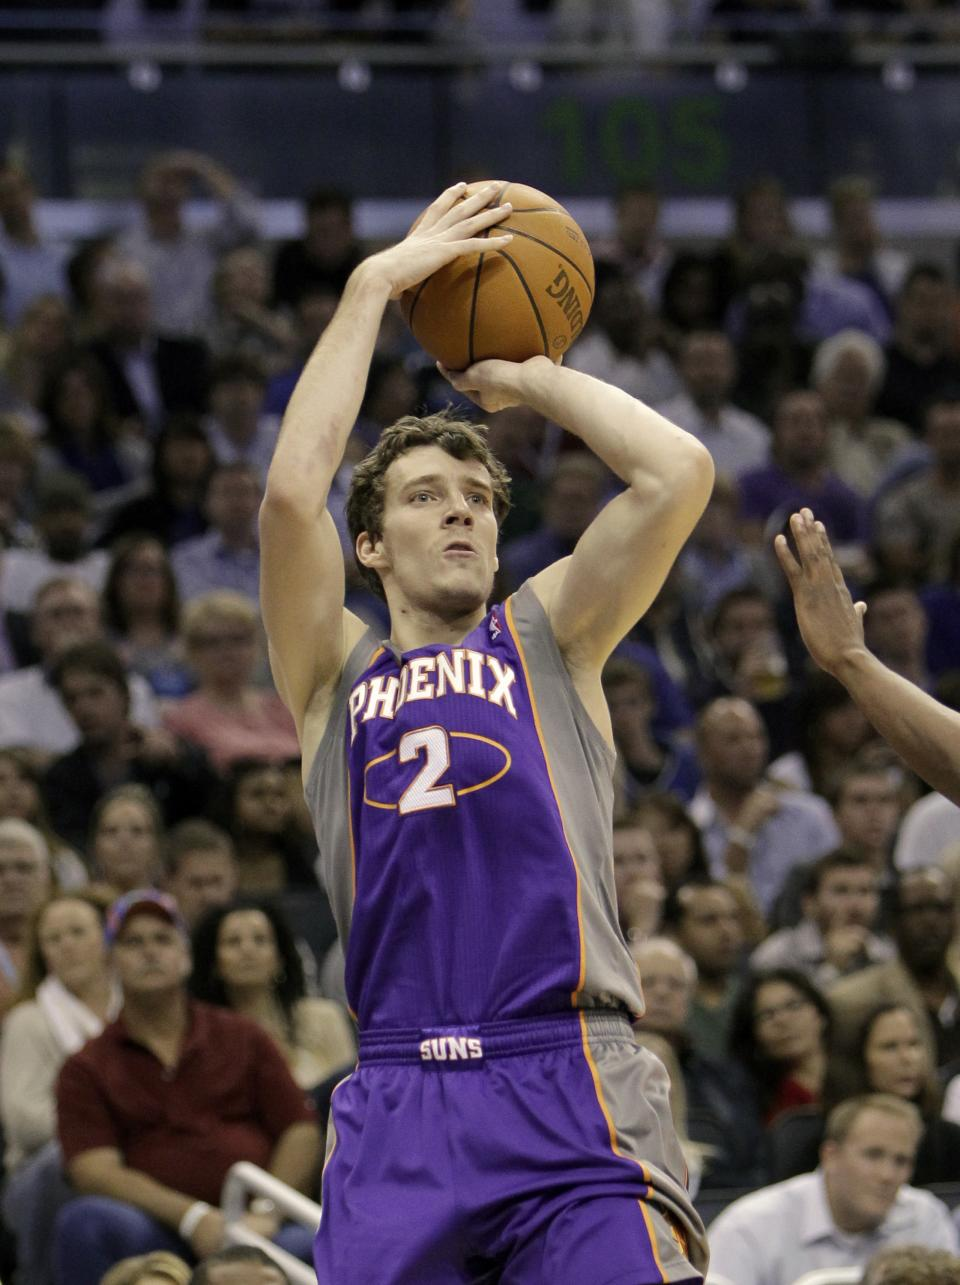 In a Nov. 18, 2010 photo Phoenix Suns' Goran Dragic, of Slovenia, takes a shot during an NBA game in Orlando, Fla.  Point guard Goran Dragic is coming back to Phoenix, according to a person with knowledge of the situation.  (AP Photo/John Raoux)